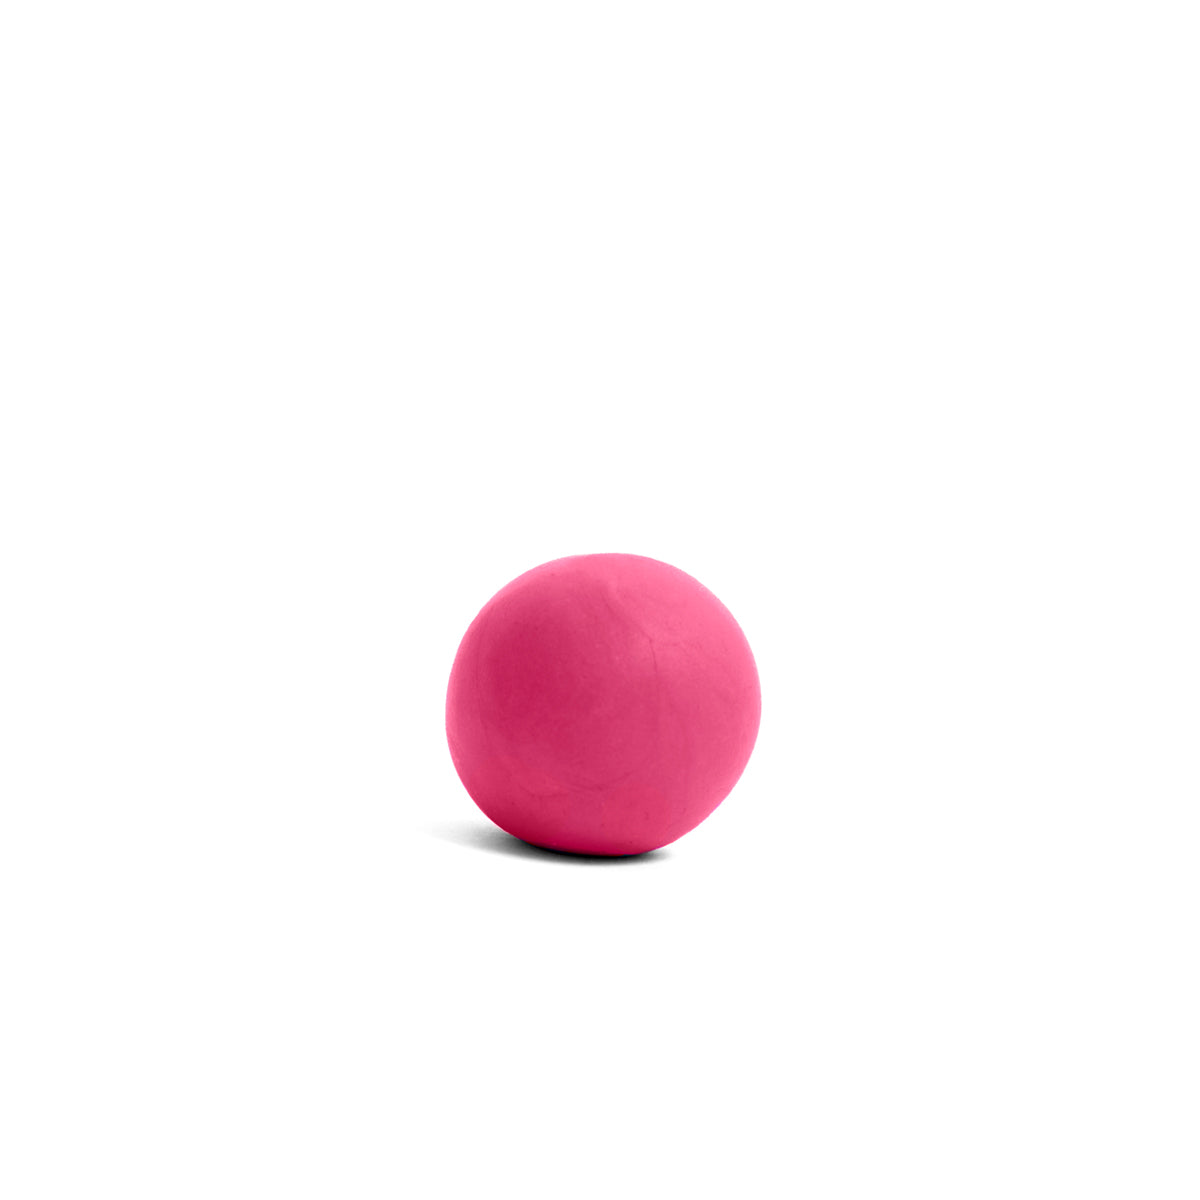 Pink Vanilla Fondant - 4.4oz. Foil Box of 12 - Satin Ice